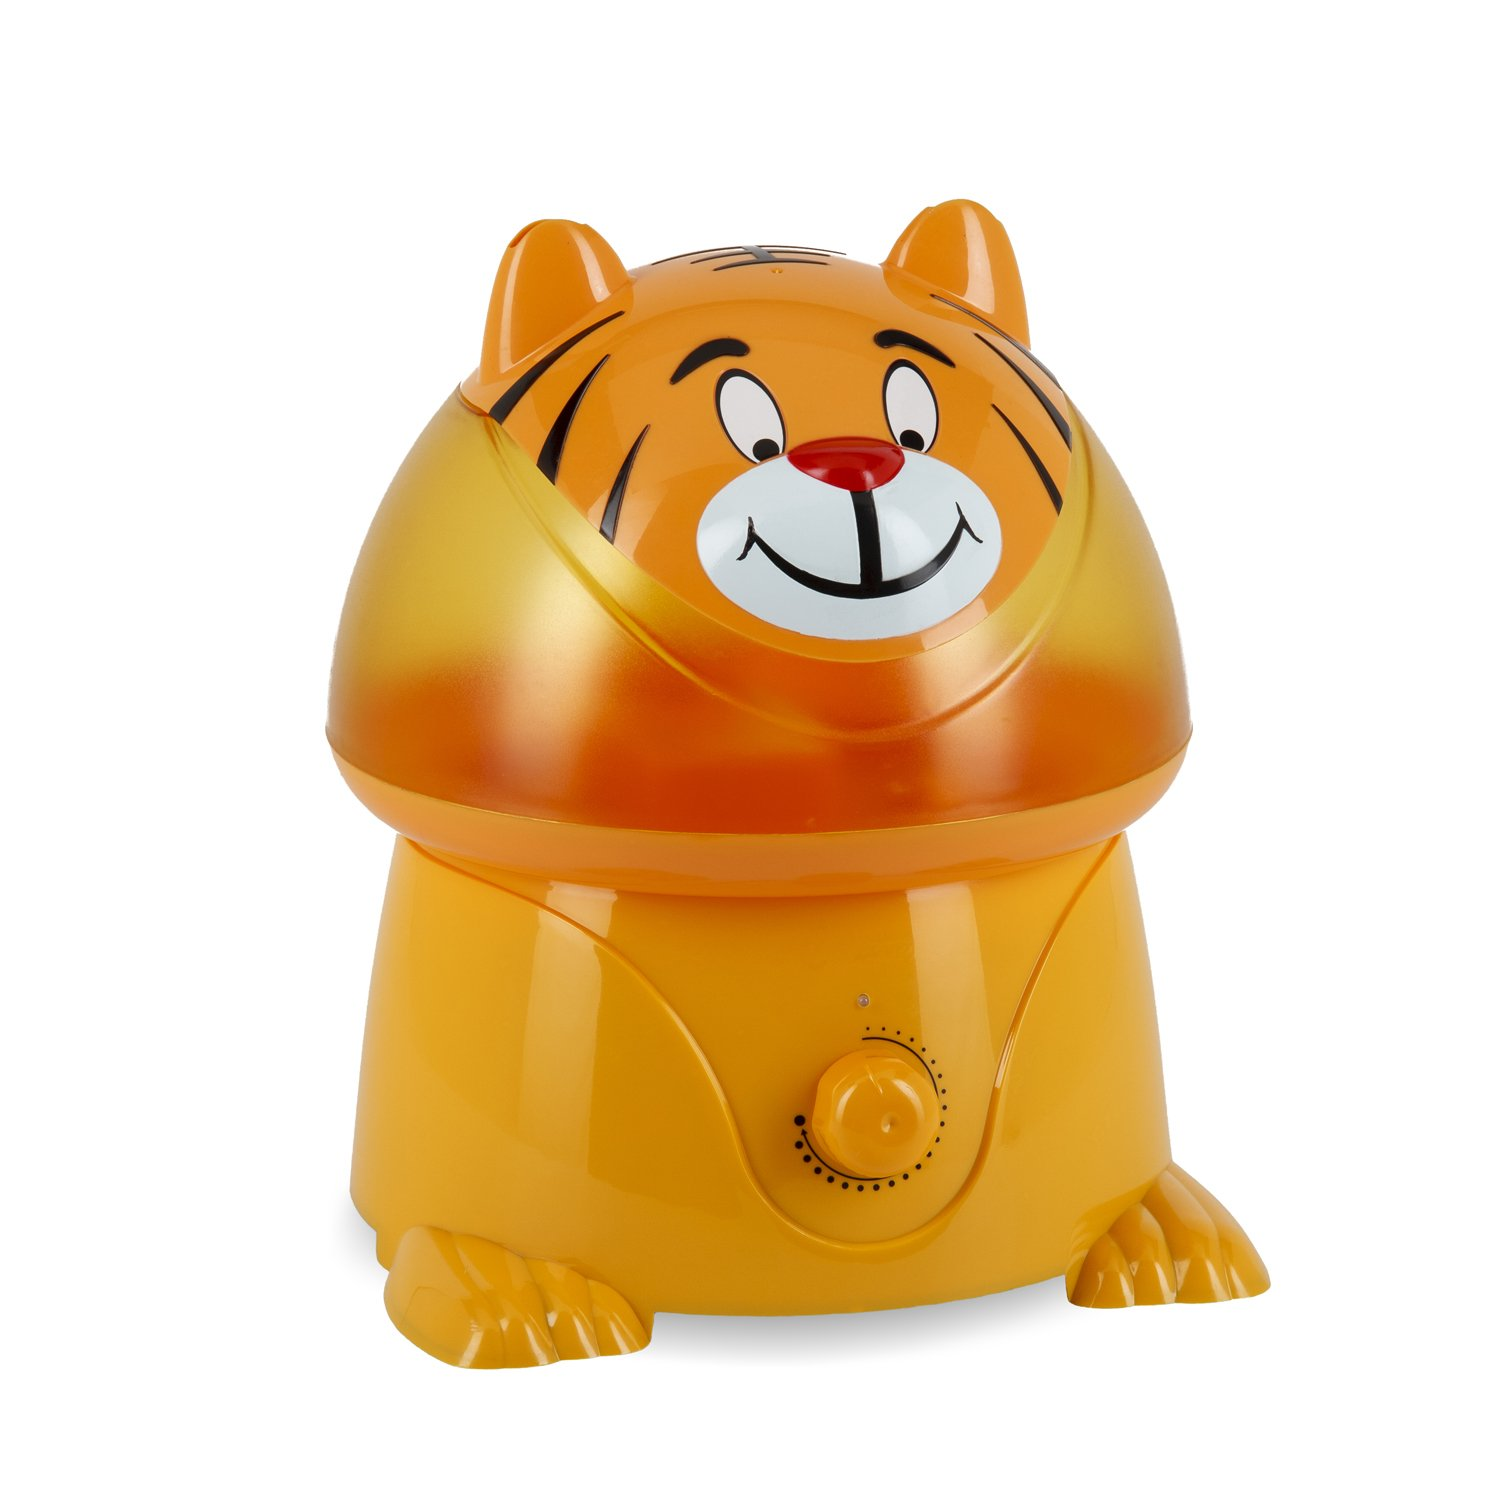 Crane USA Filter-Free Cool Mist Humidifiers for Kids, Tiger